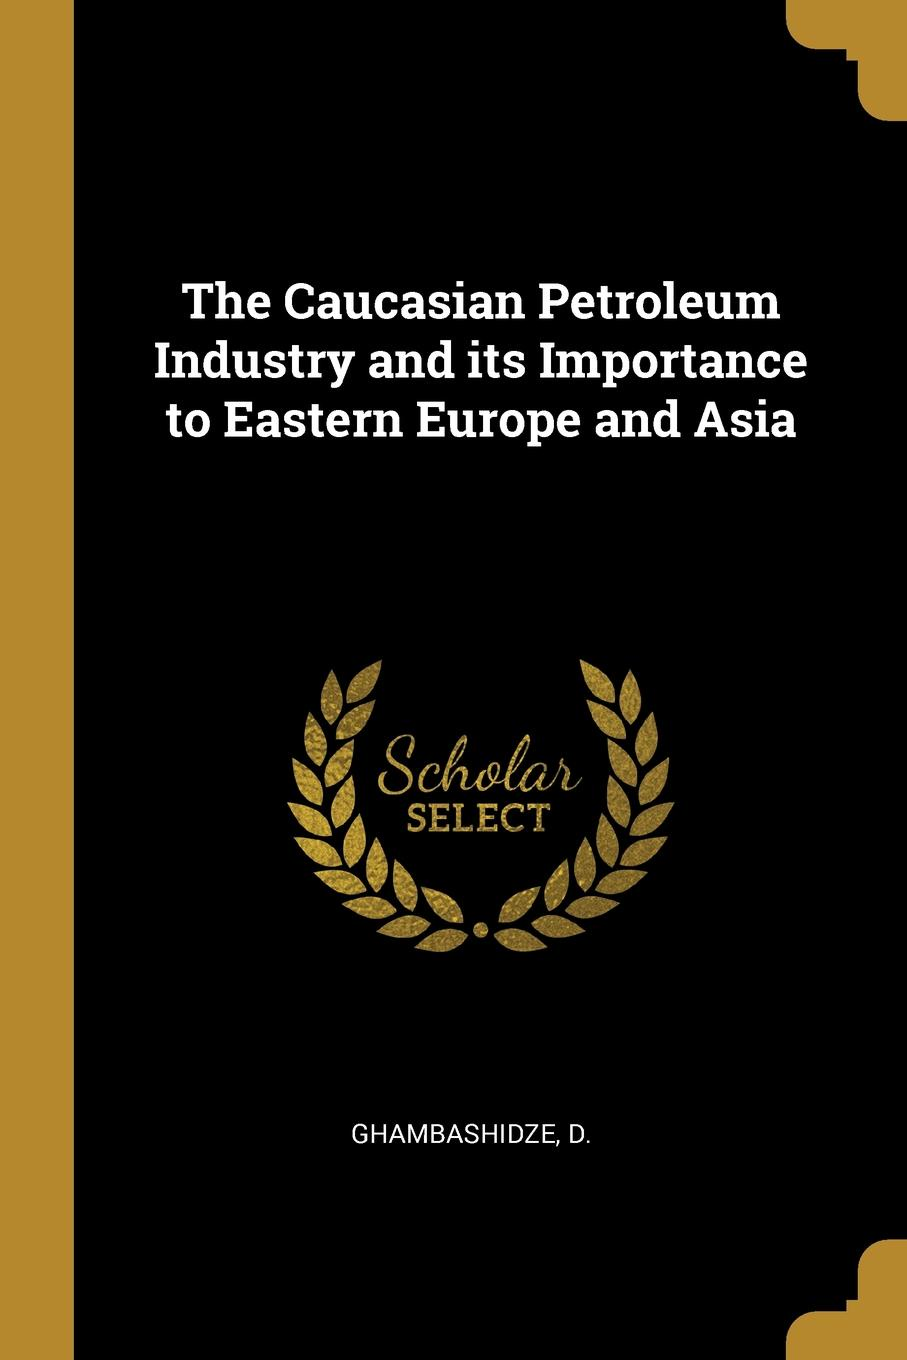 Ghambashidze D.. The Caucasian Petroleum Industry and its Importance to Eastern Europe and Asia